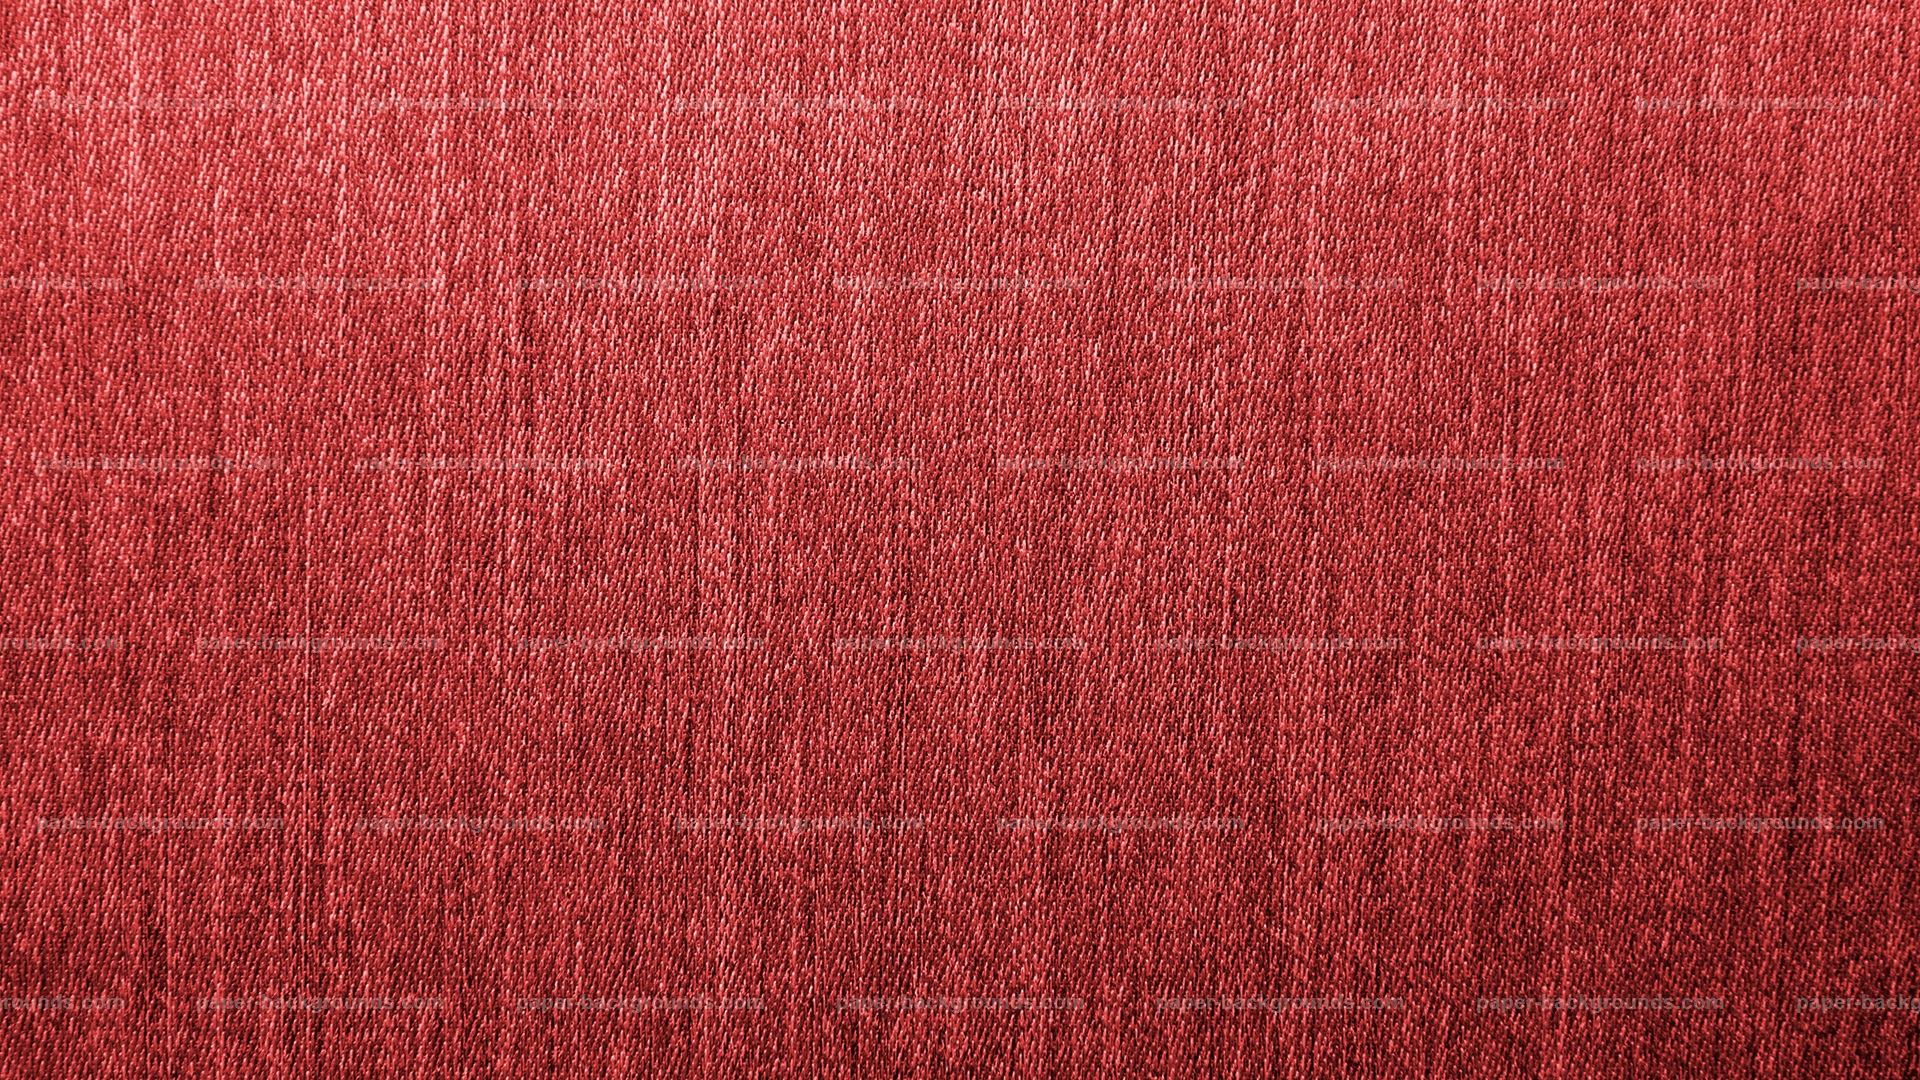 red textured background hd - photo #17